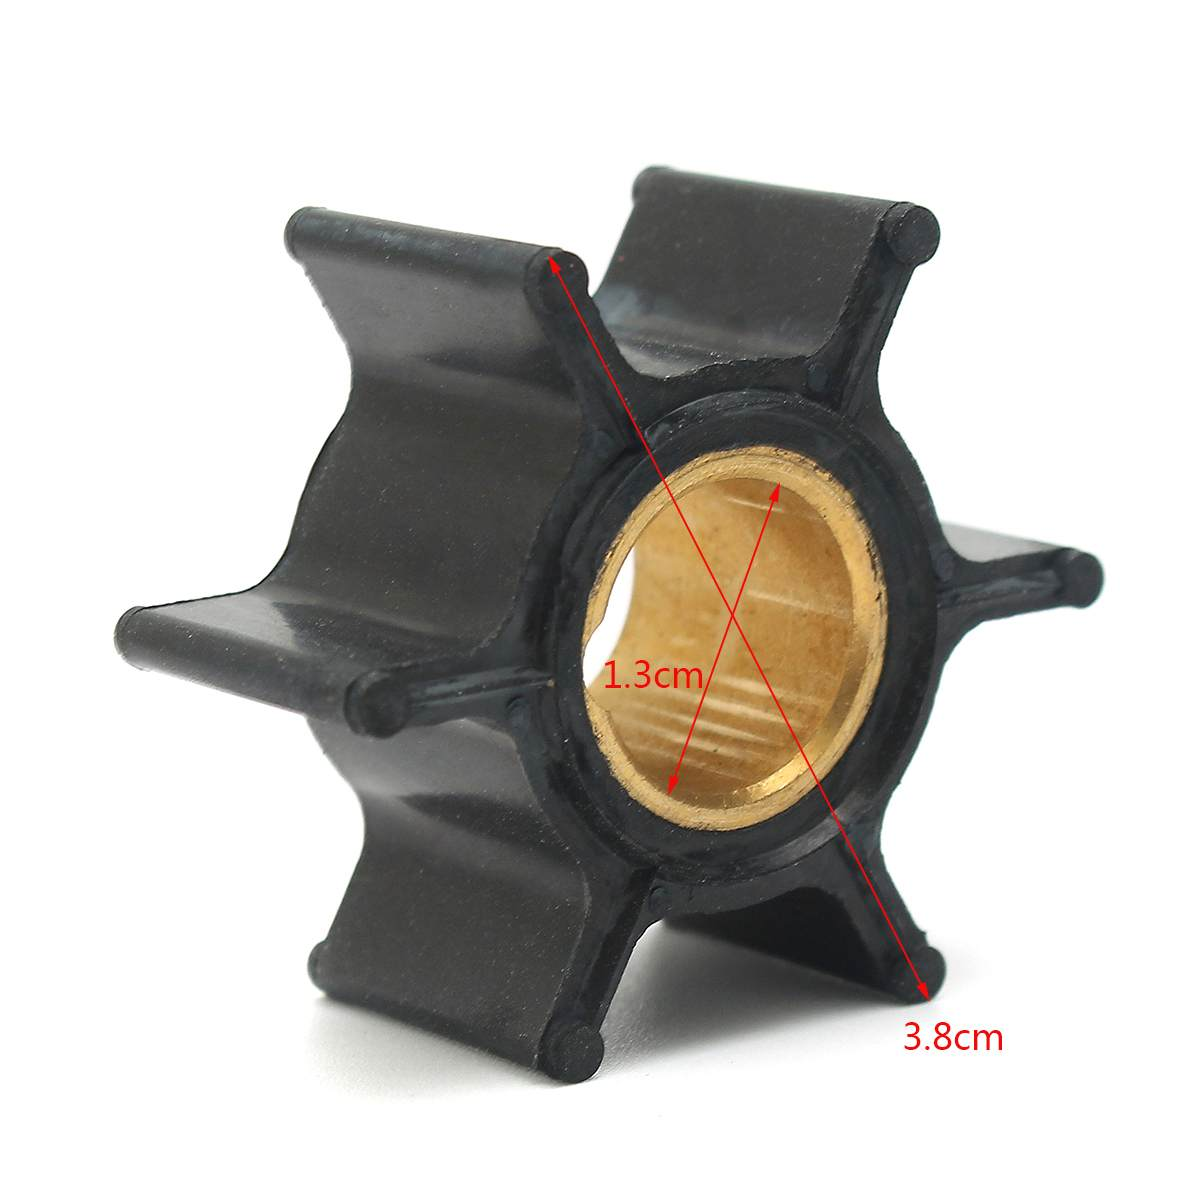 386084 18-3050 500355 Boat <font><b>Outboard</b></font> <font><b>Motors</b></font> Water Pump Impeller For Johnson Evinrude 9.9/<font><b>15HP</b></font> 6 Blades Replacement Rubber Black image